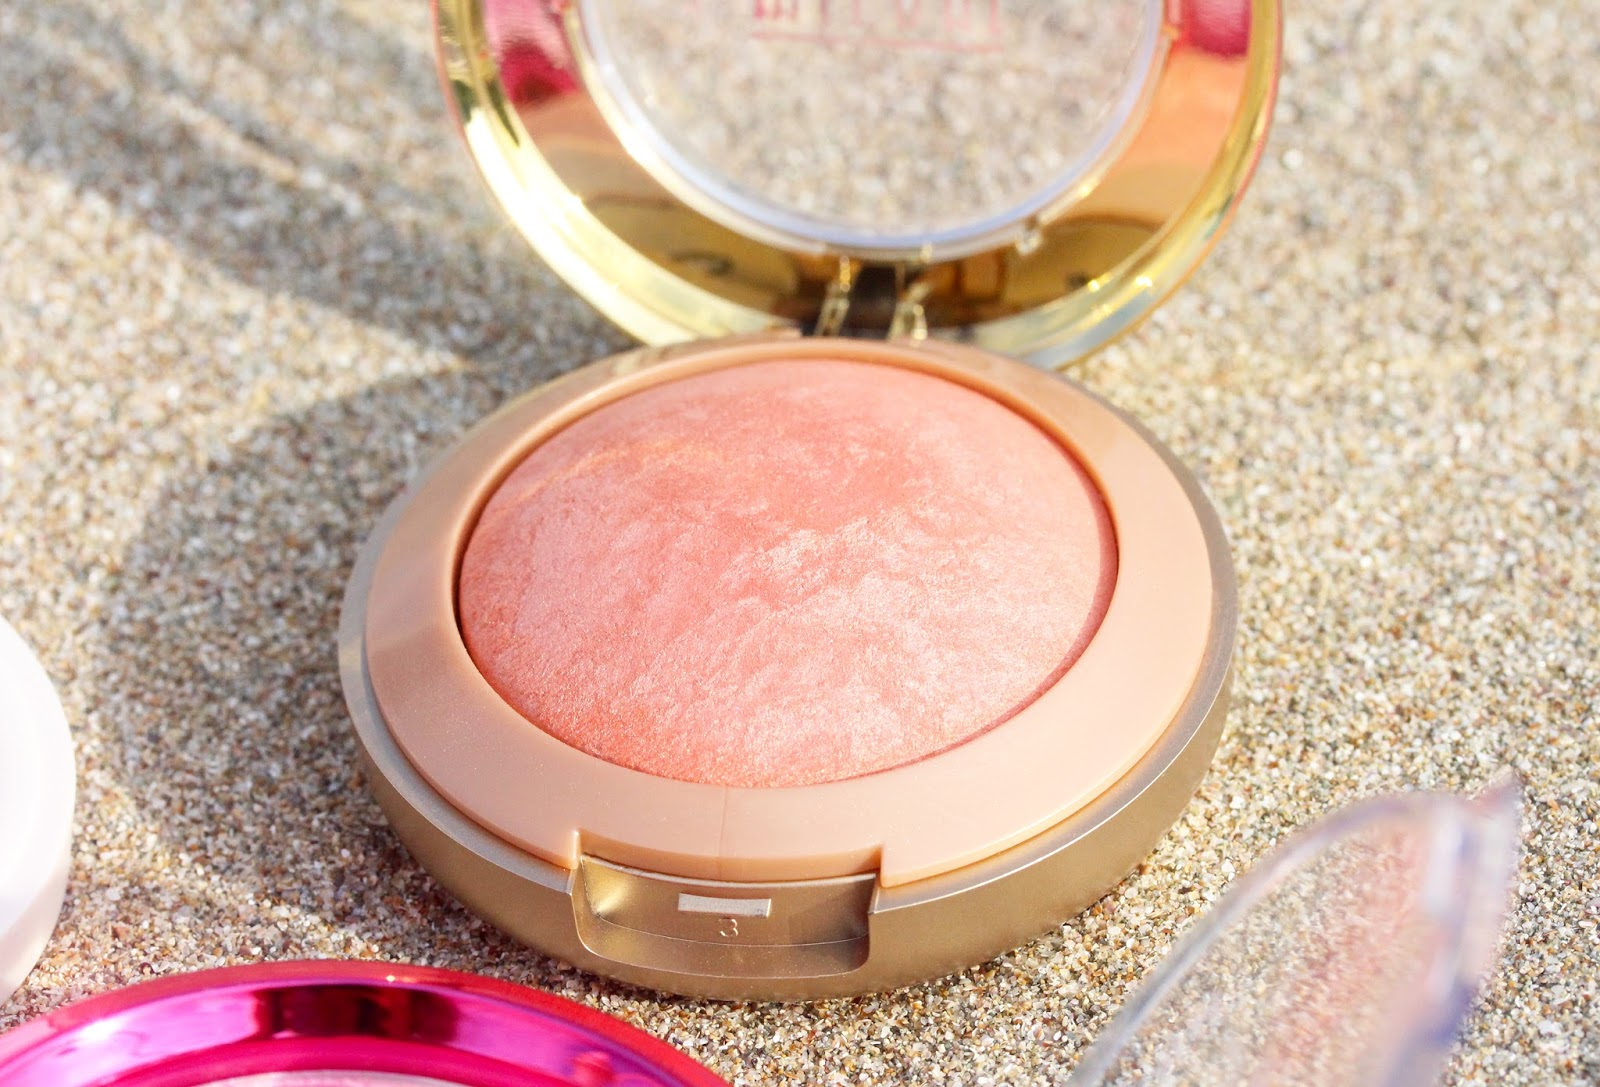 Milani Luminoso baked blush